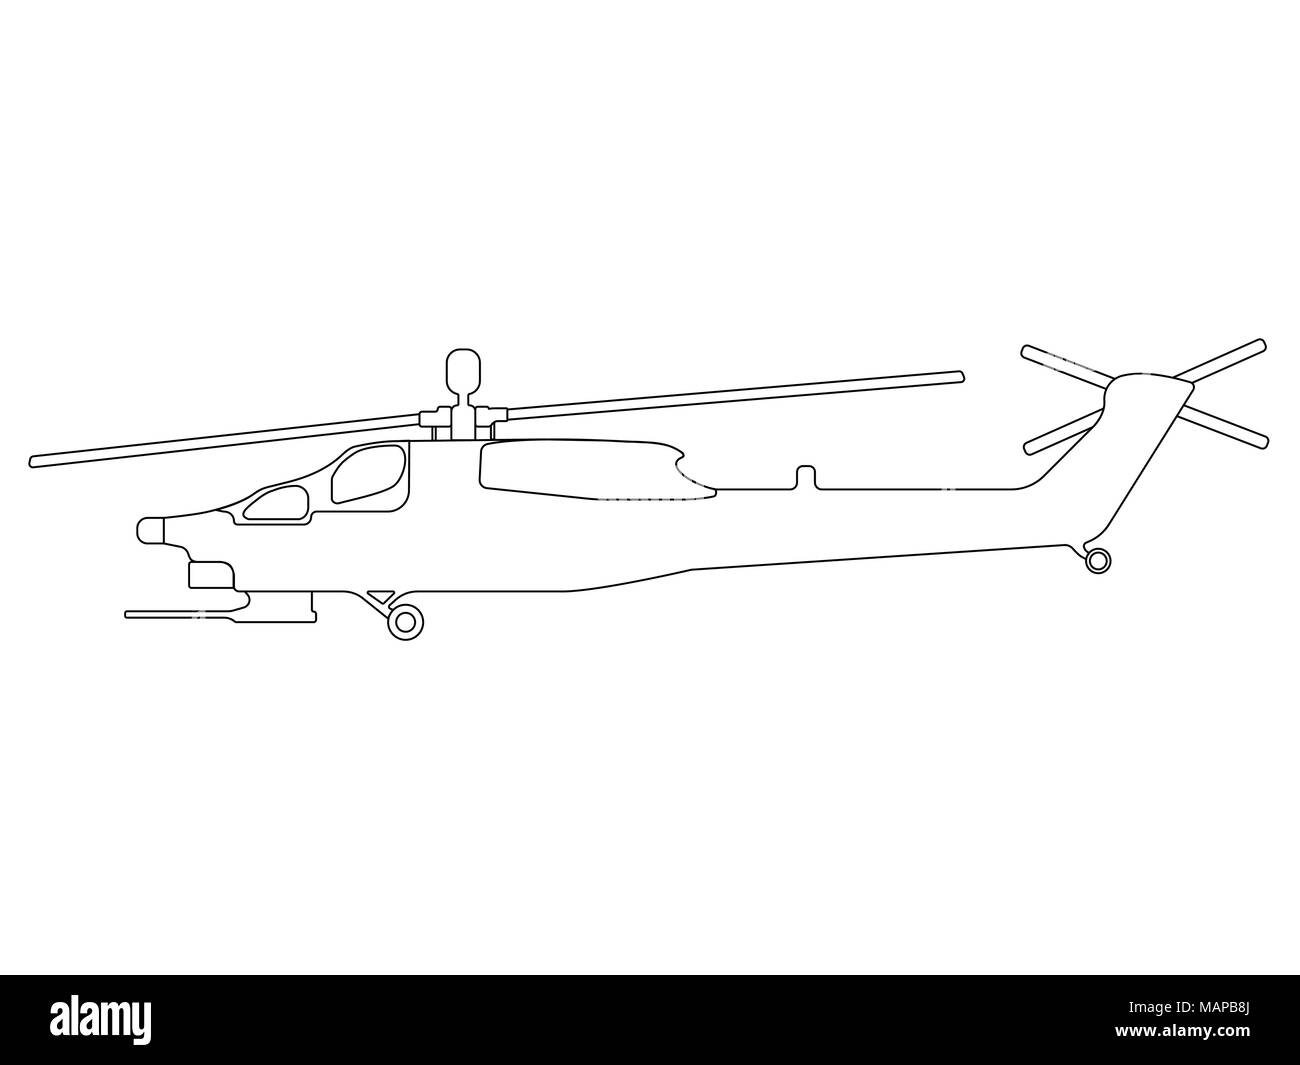 hight resolution of helicopter outline military equipment icon vector illustration stock image